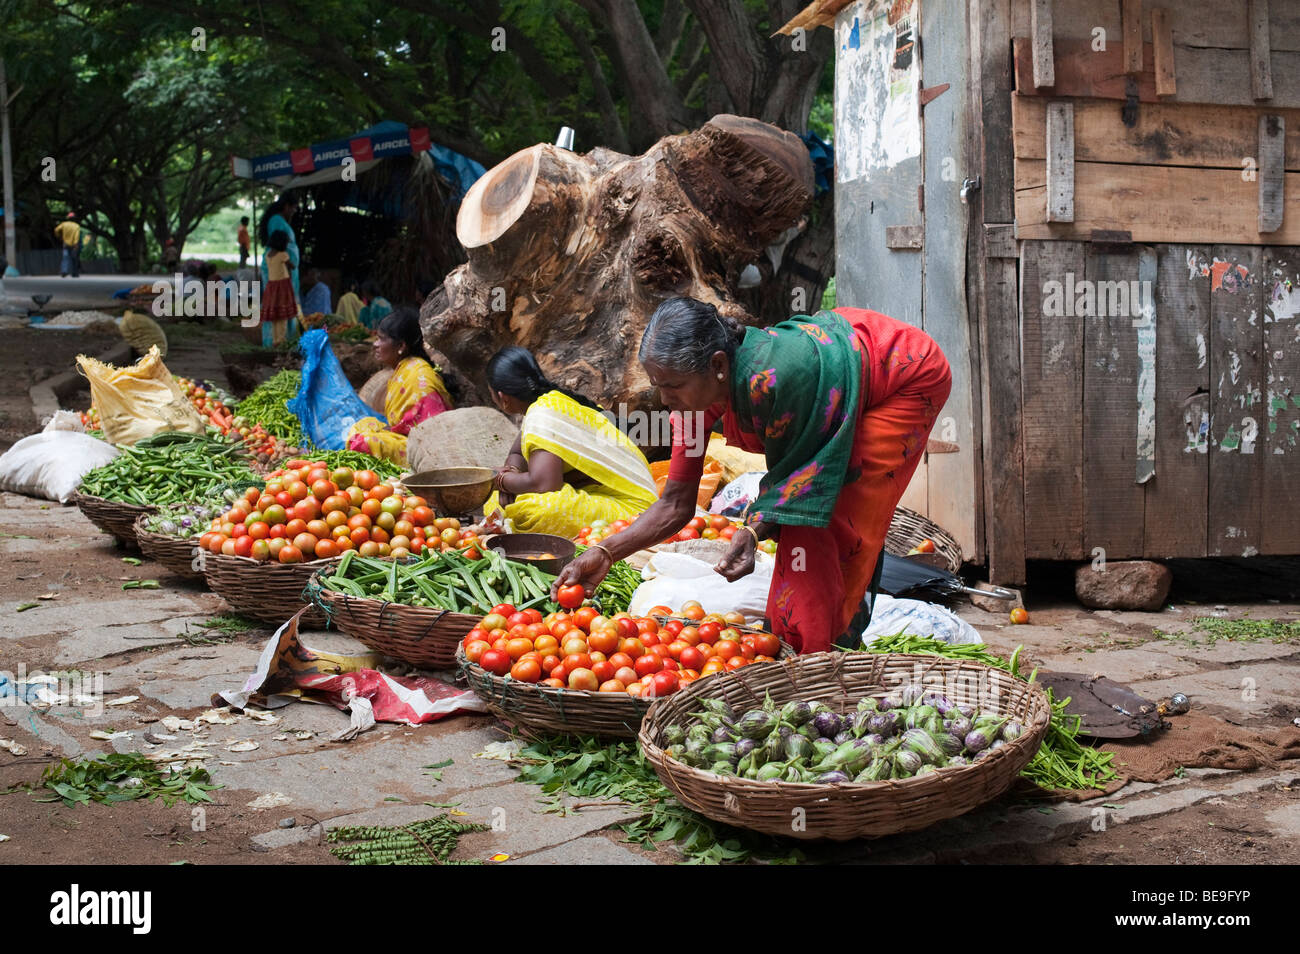 Indian street market in Yenumulapalli with baskets of vegetables, Yenumulapalli, Andhra Pradesh, India - Stock Image